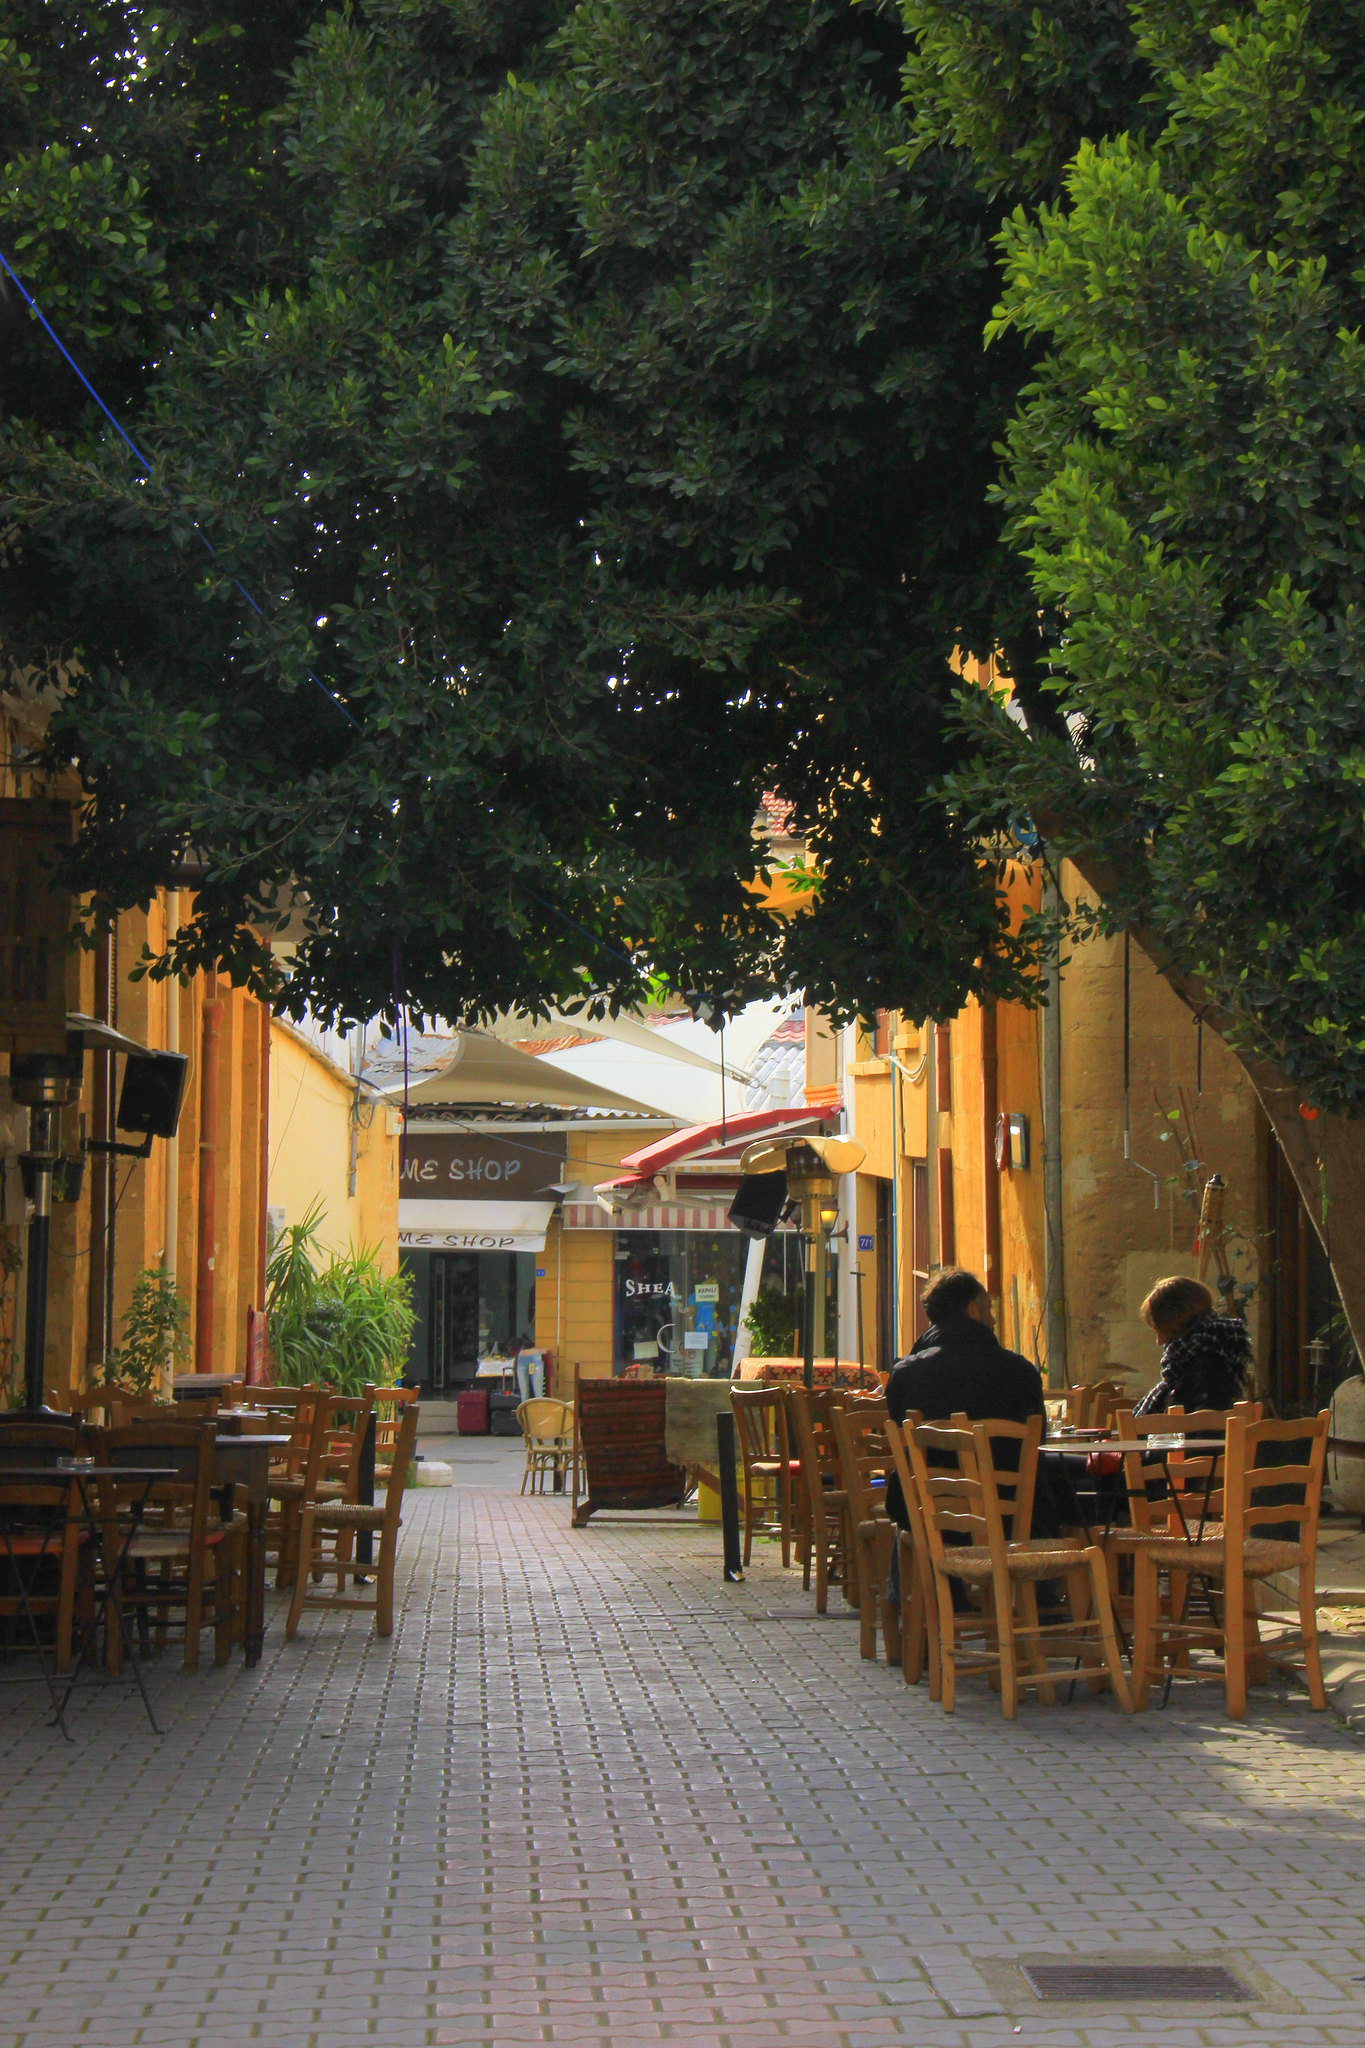 Enjoy the cafe culture when you visit Northern Cyprus